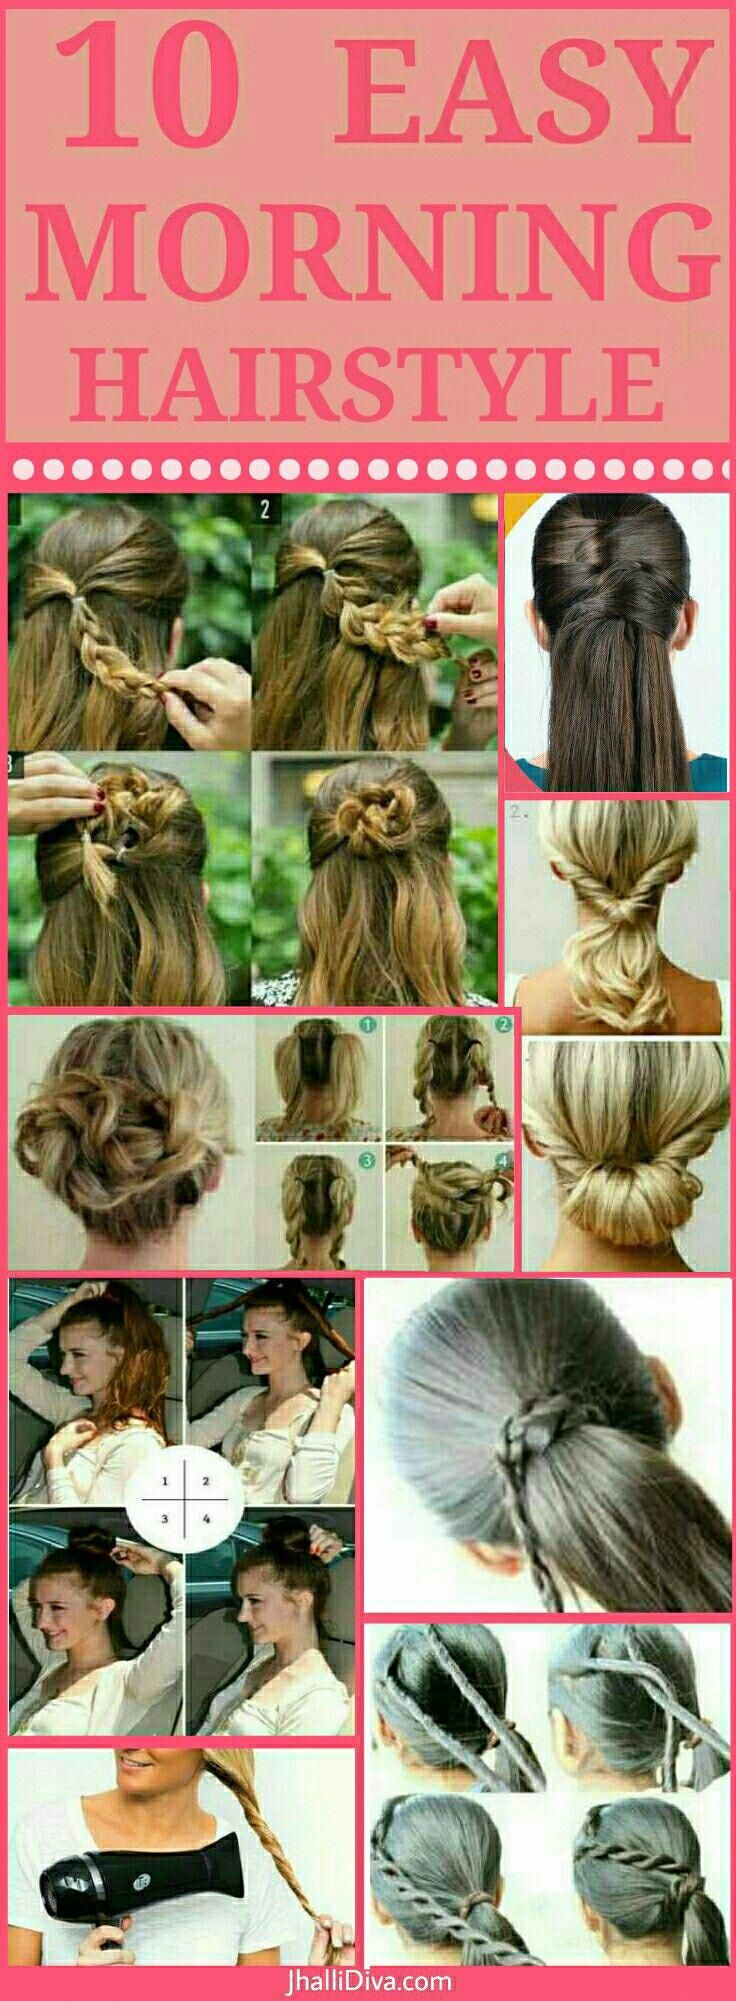 Top 10 Easy morning hairstyle tutorials when you're running late or just being lazy! They look chic and take just few minutes.. #Diyhairstyles